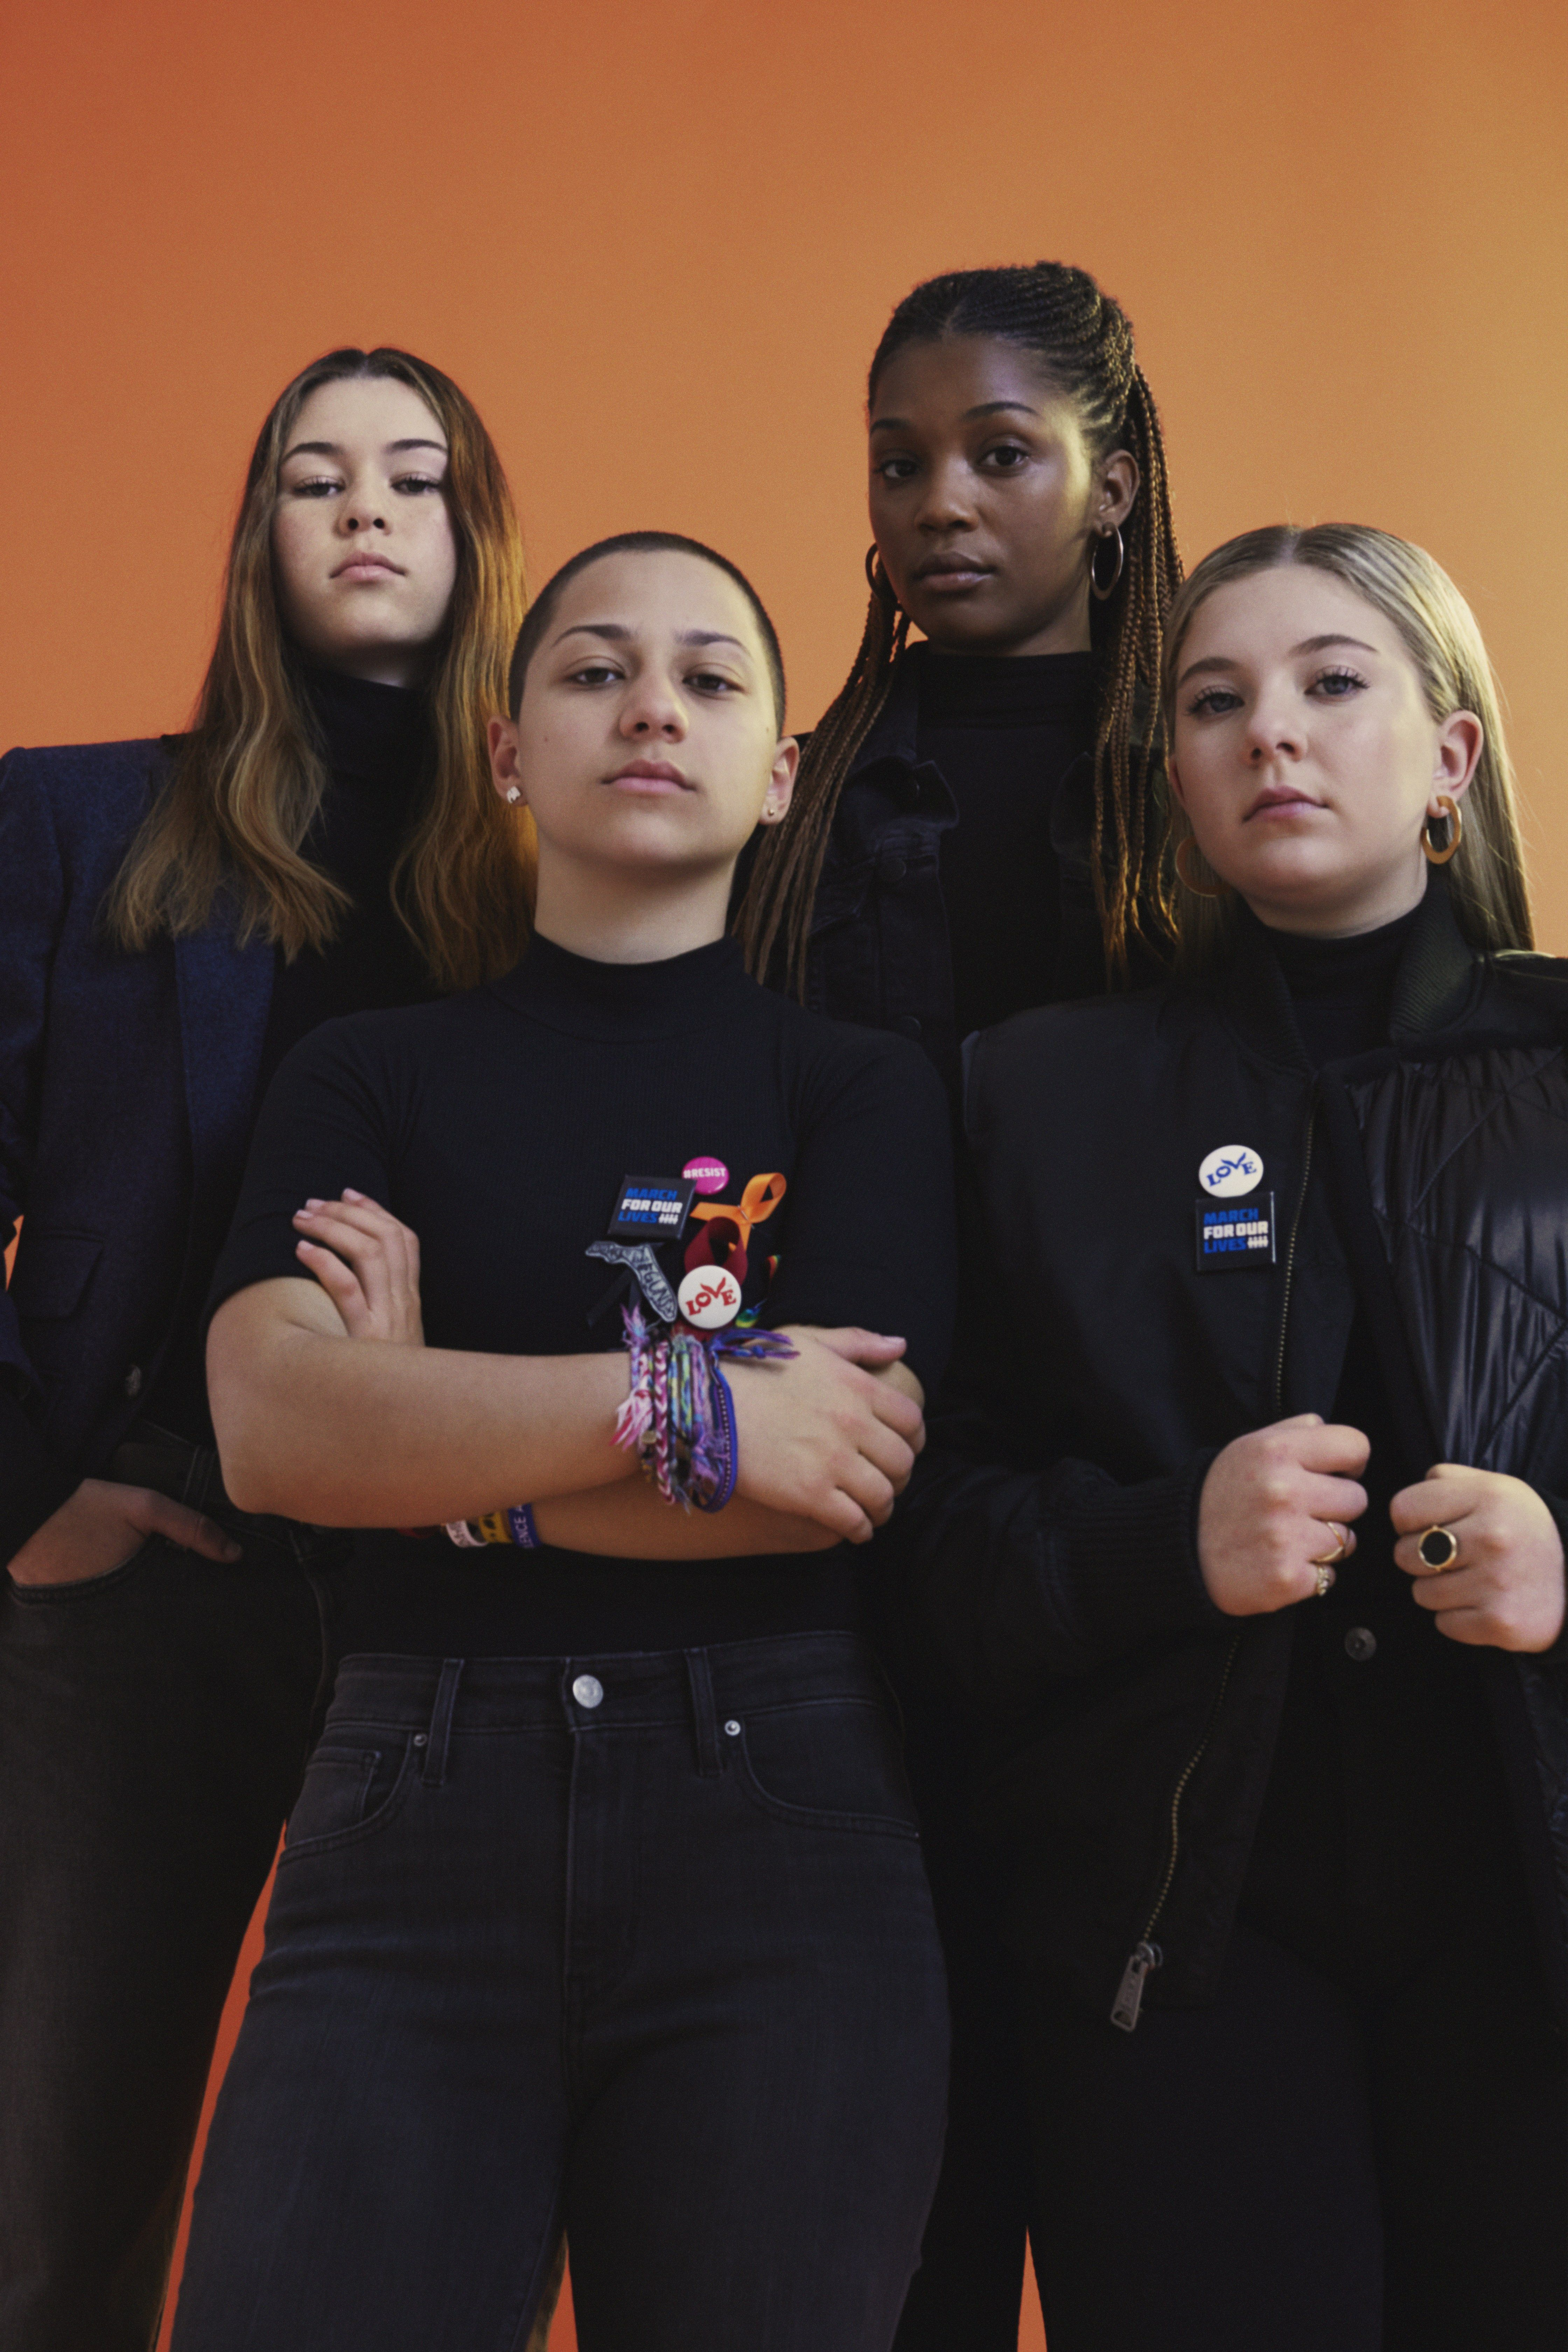 49883e3a1a0 These Young People Rock!! Gun Violence Will Be Stopped By These 9 Young  Activists